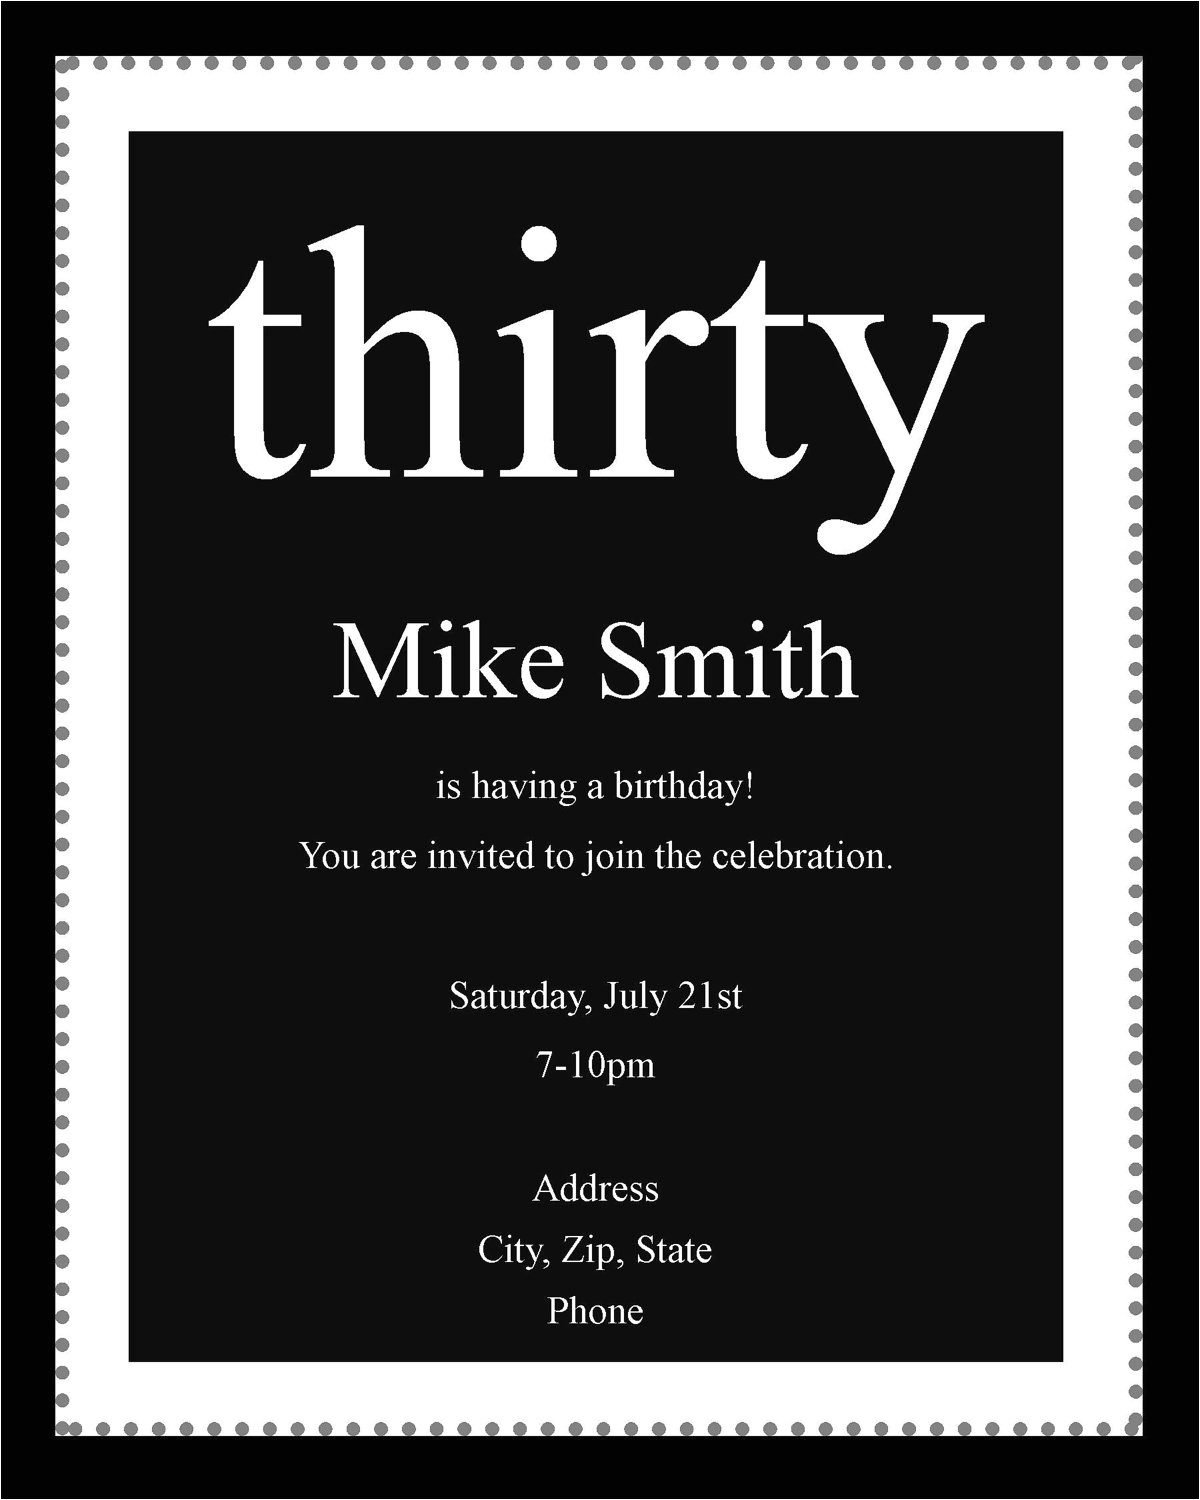 white party invitation wording black and white party theme invitations black and white birthday